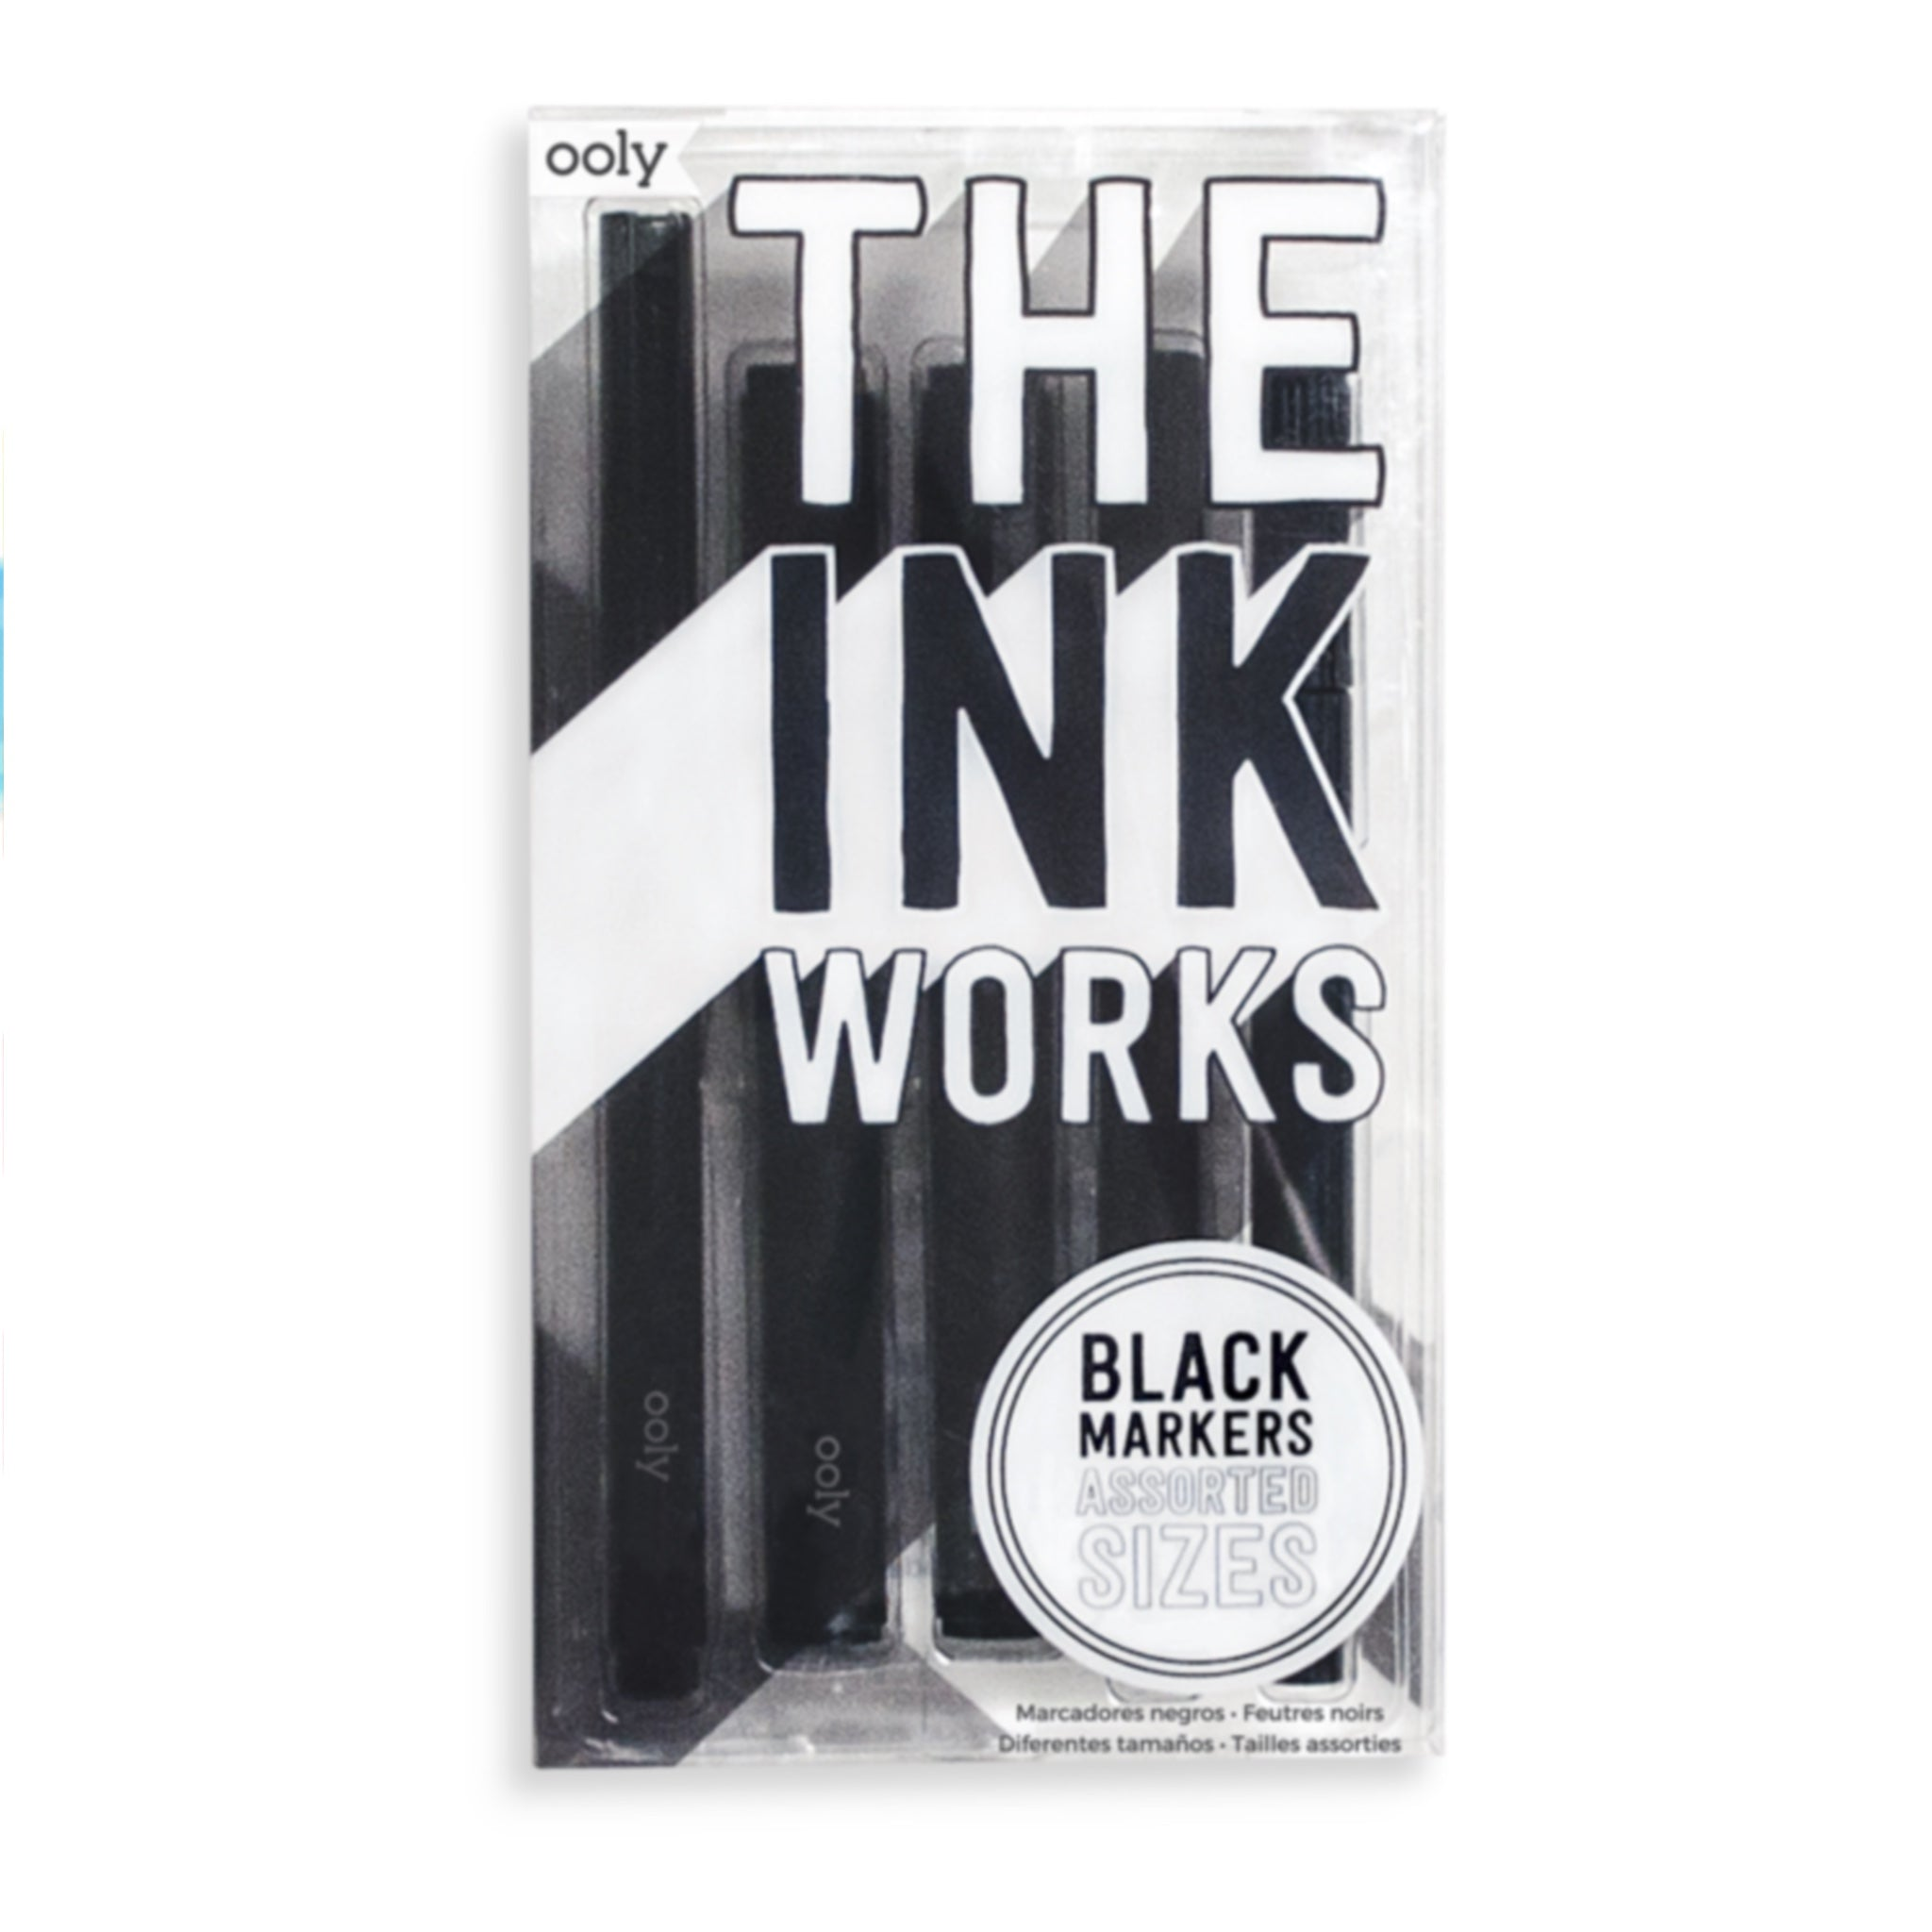 Ooly The Ink Works Markers - Set of 5 - by Ooly - K. A. Artist Shop